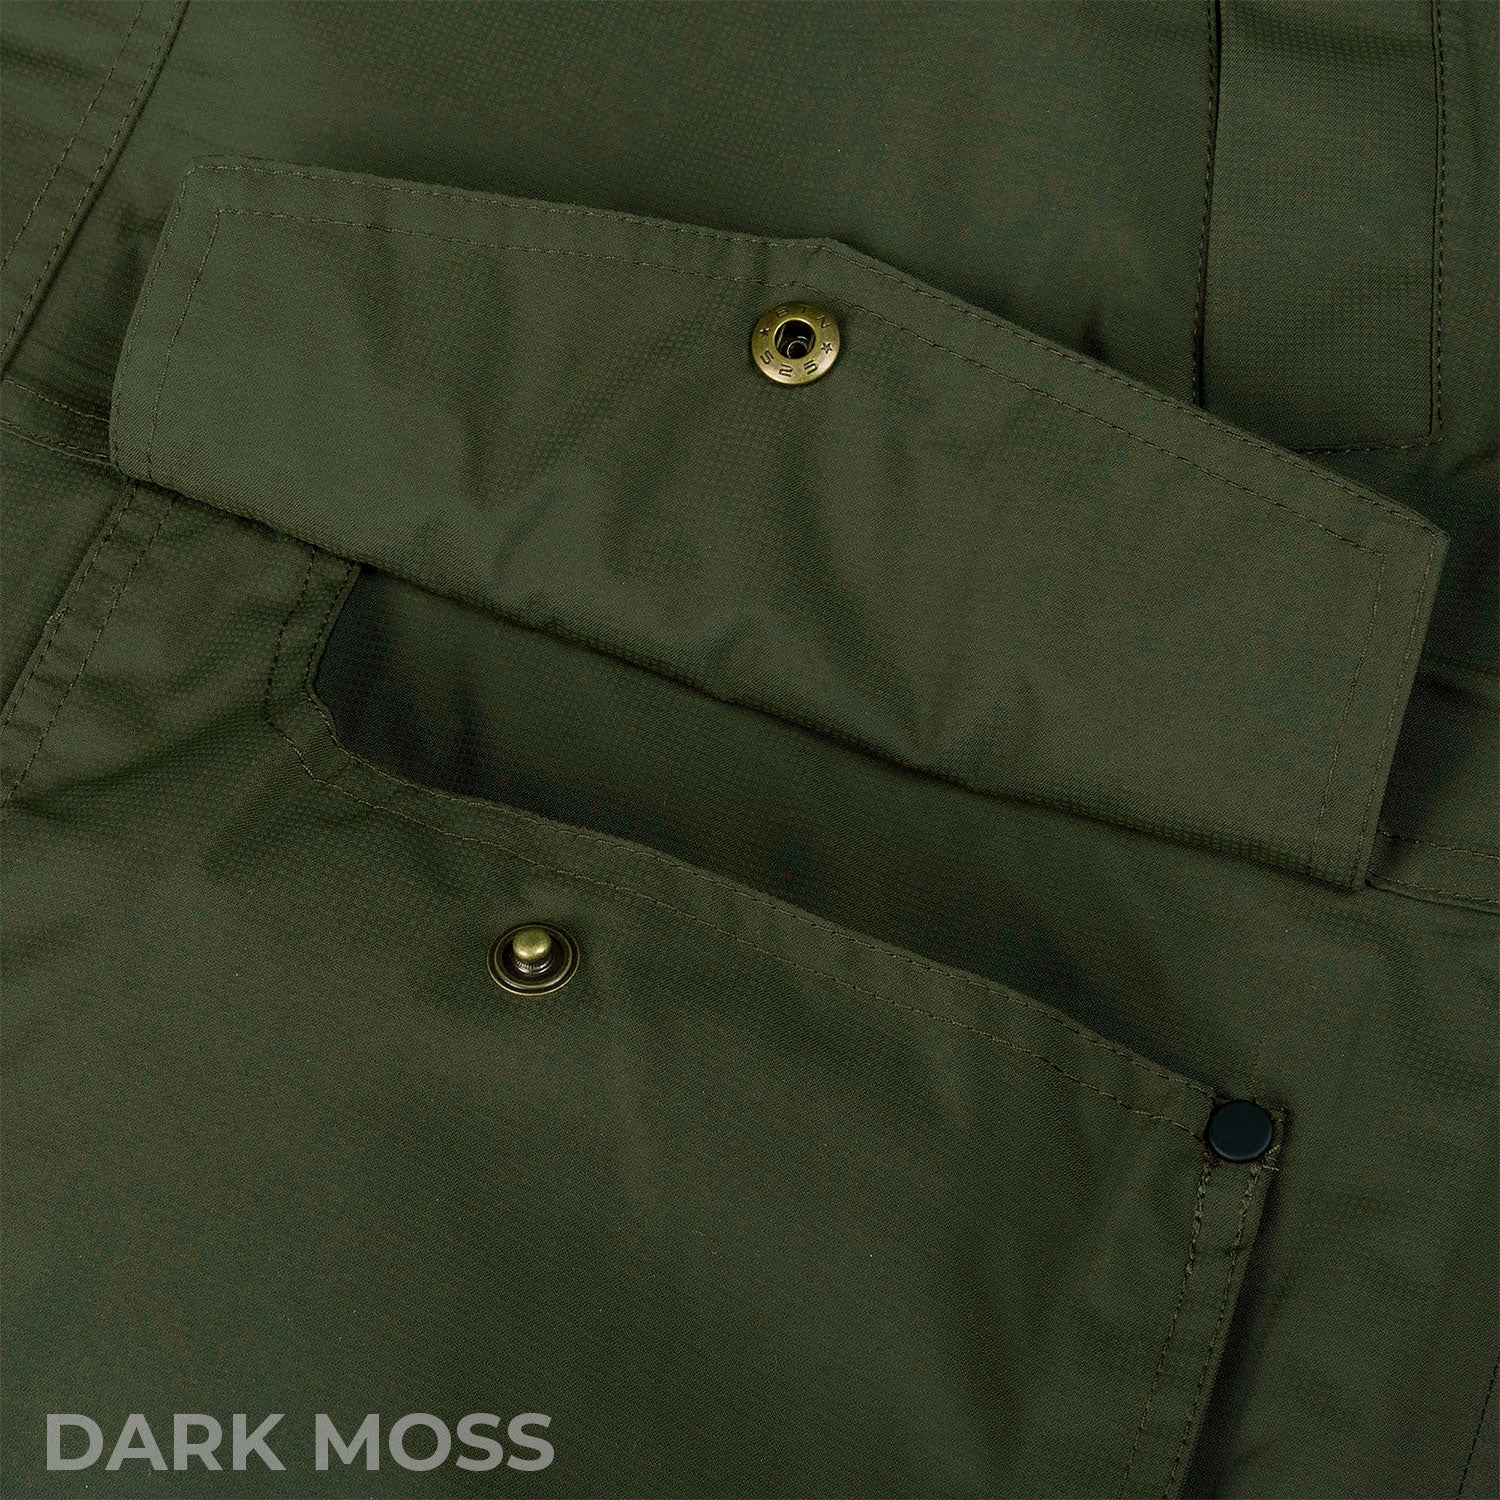 Scoop pocket with flap covering